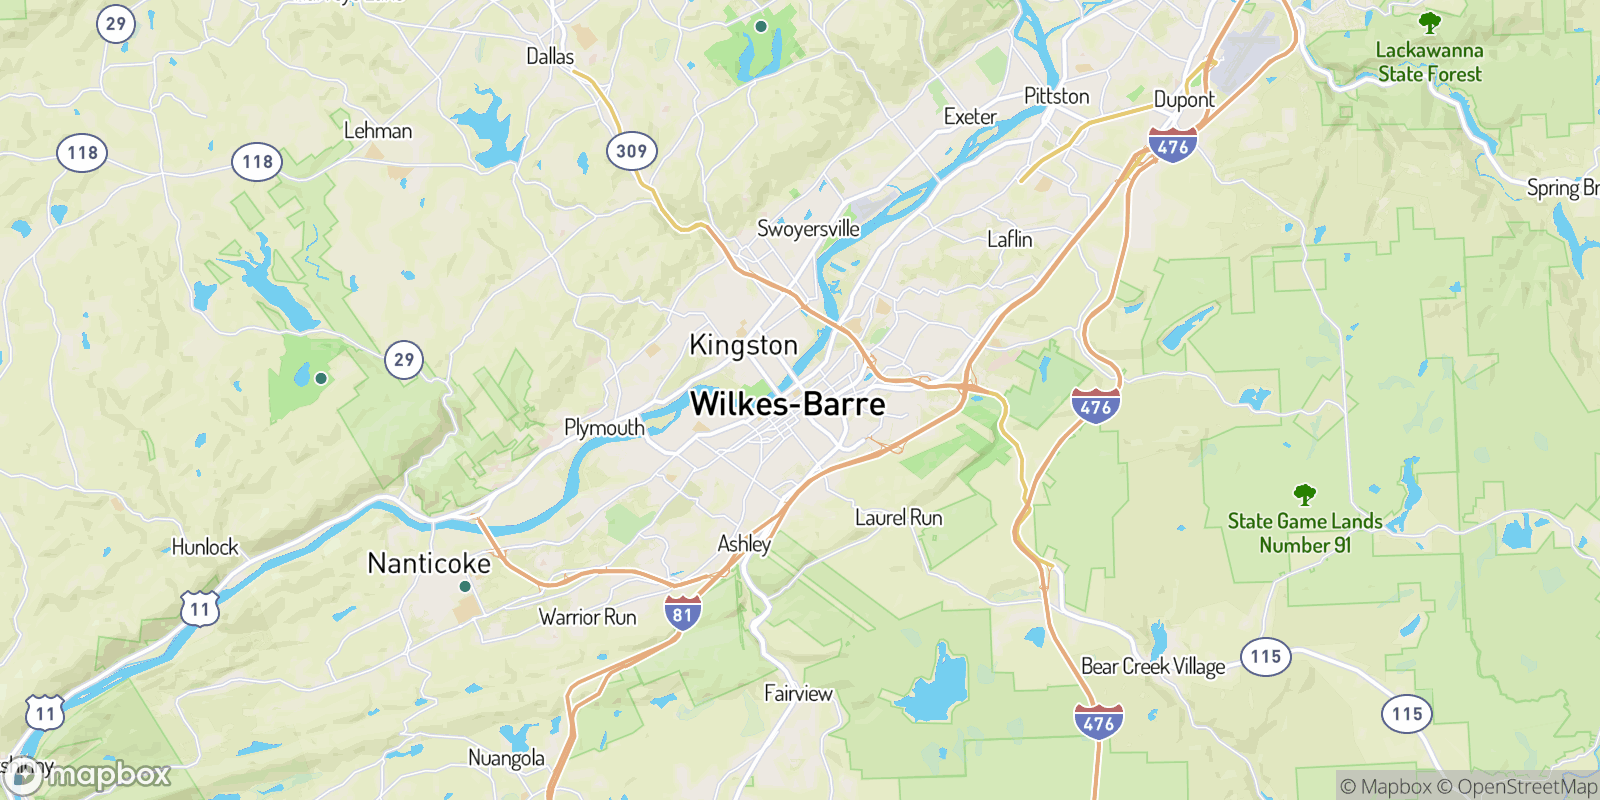 The best camping near Wilkes-Barre, Pennsylvania